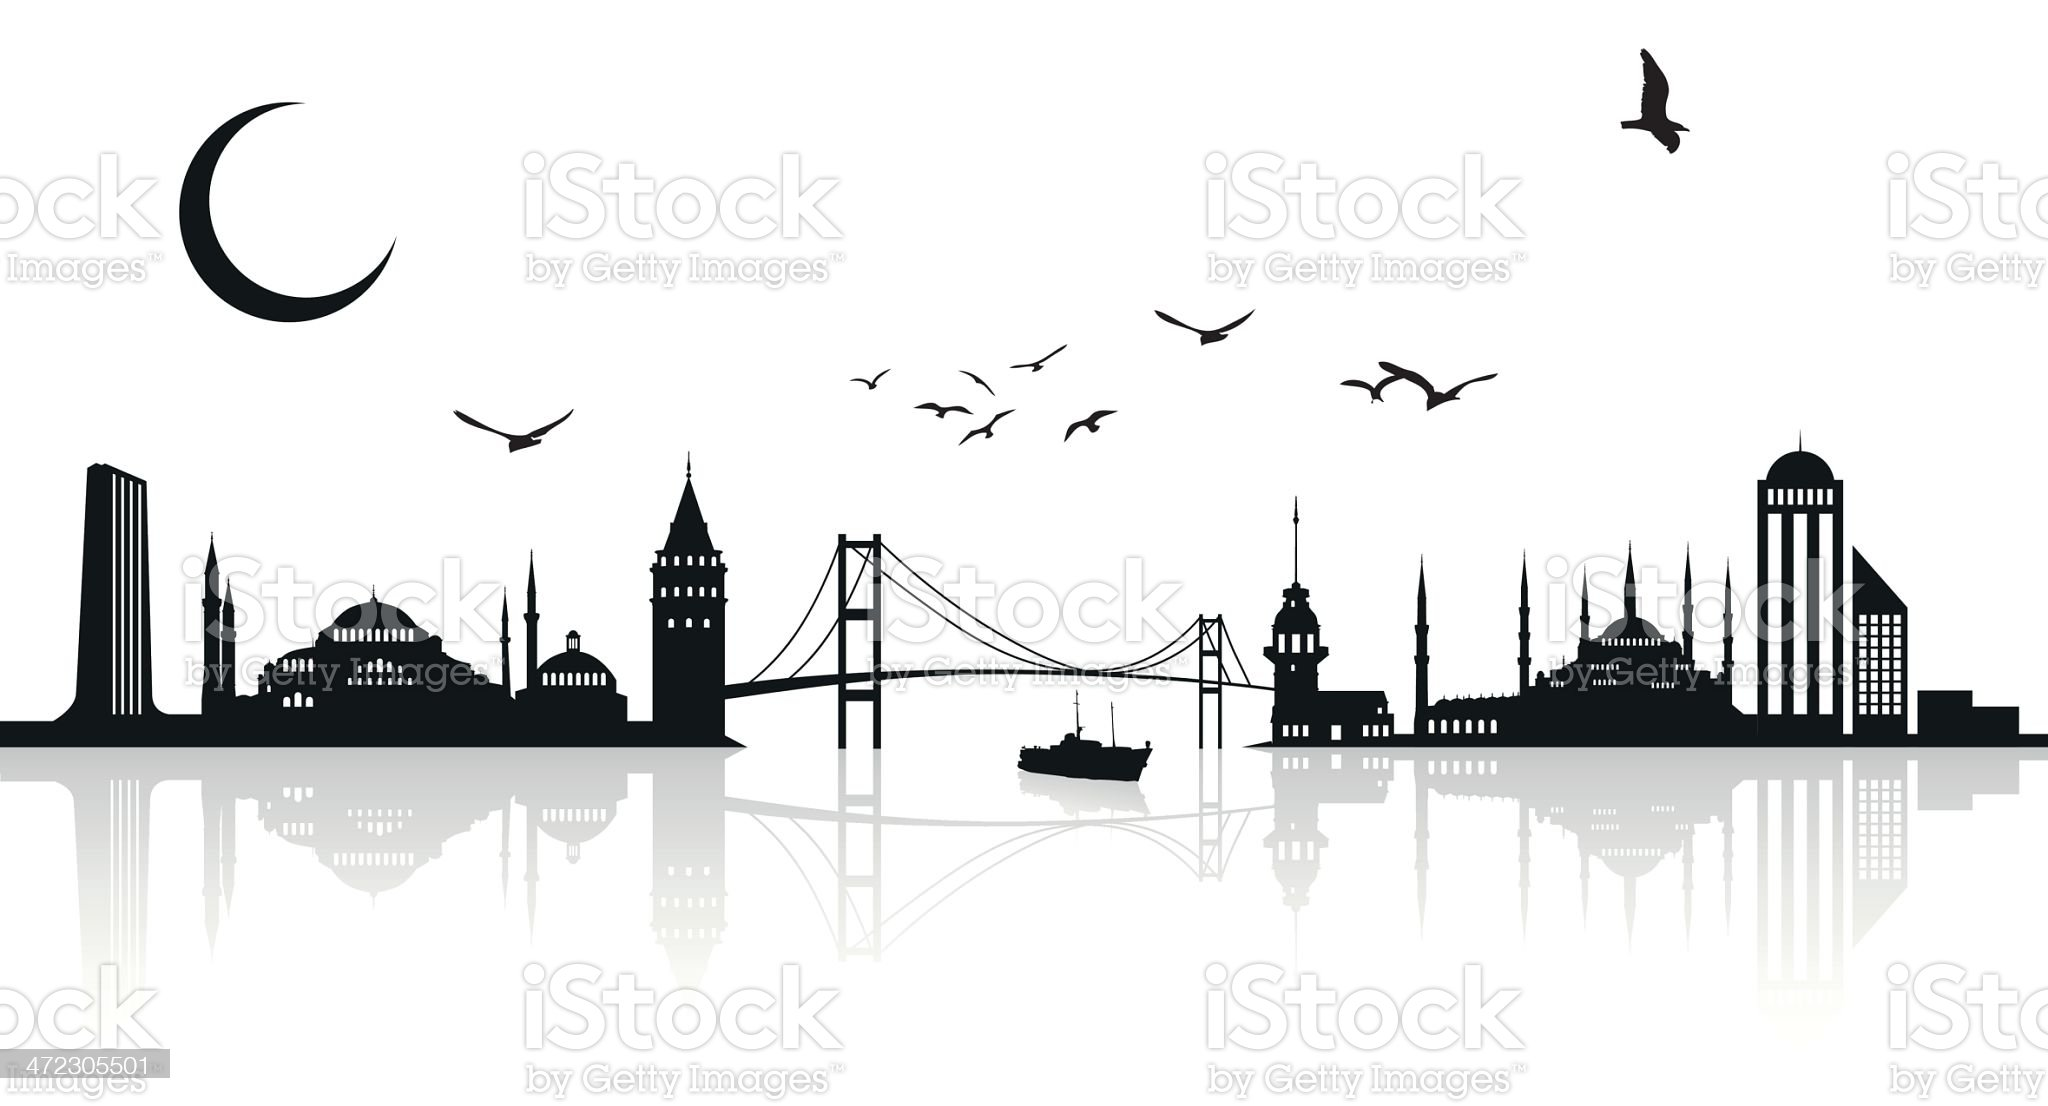 İstanbul silhouette royalty-free stock vector art